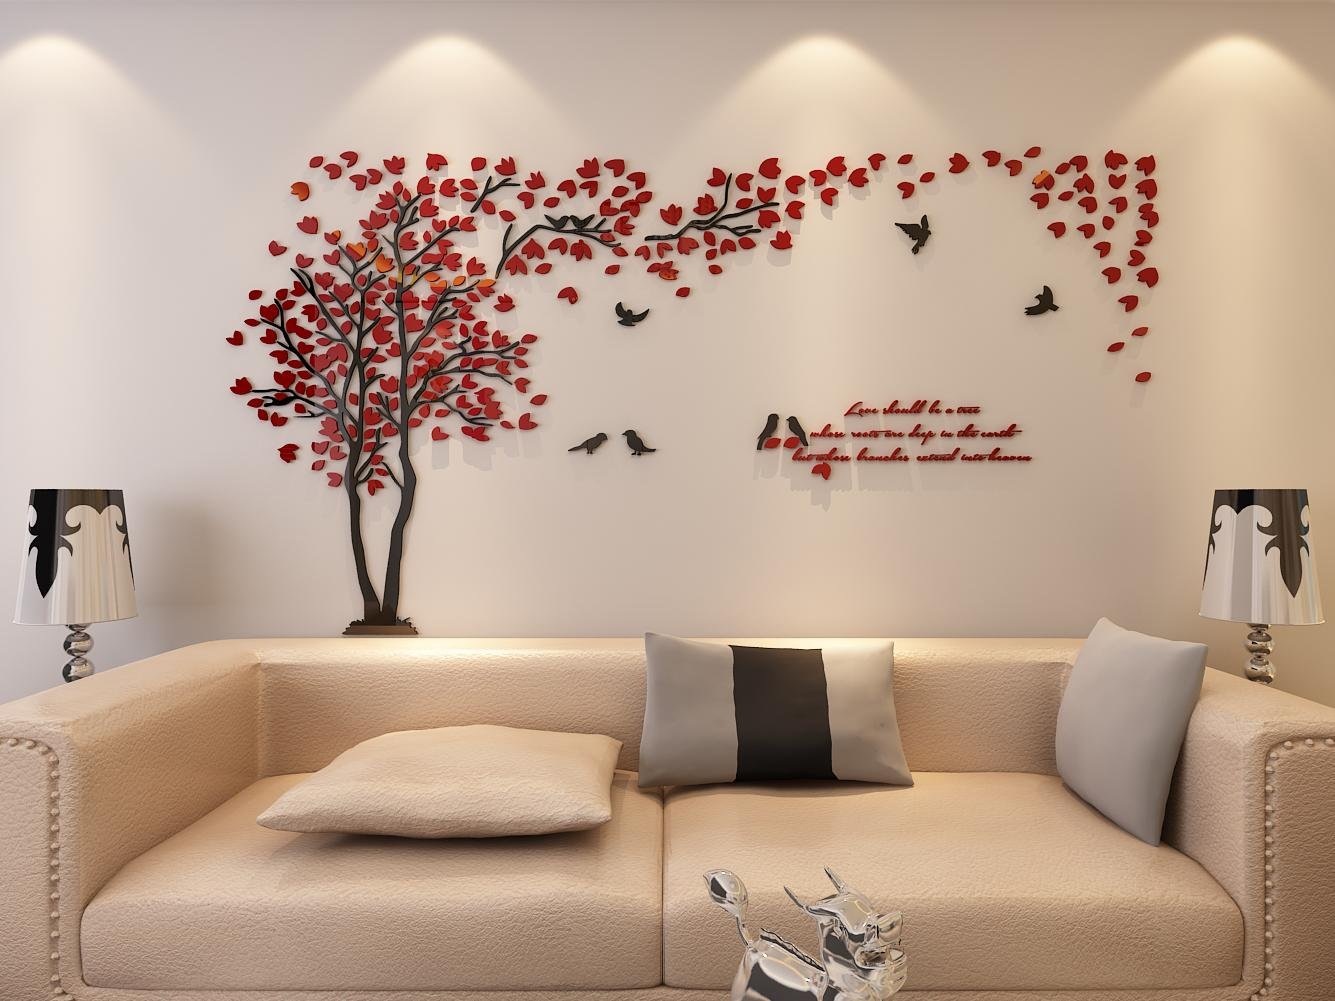 Amazon 3d couple tree wall murals for living room bedroom amazon 3d couple tree wall murals for living room bedroom sofa backdrop tv wall background originality stickers gift diy wall decal home decor art amipublicfo Image collections